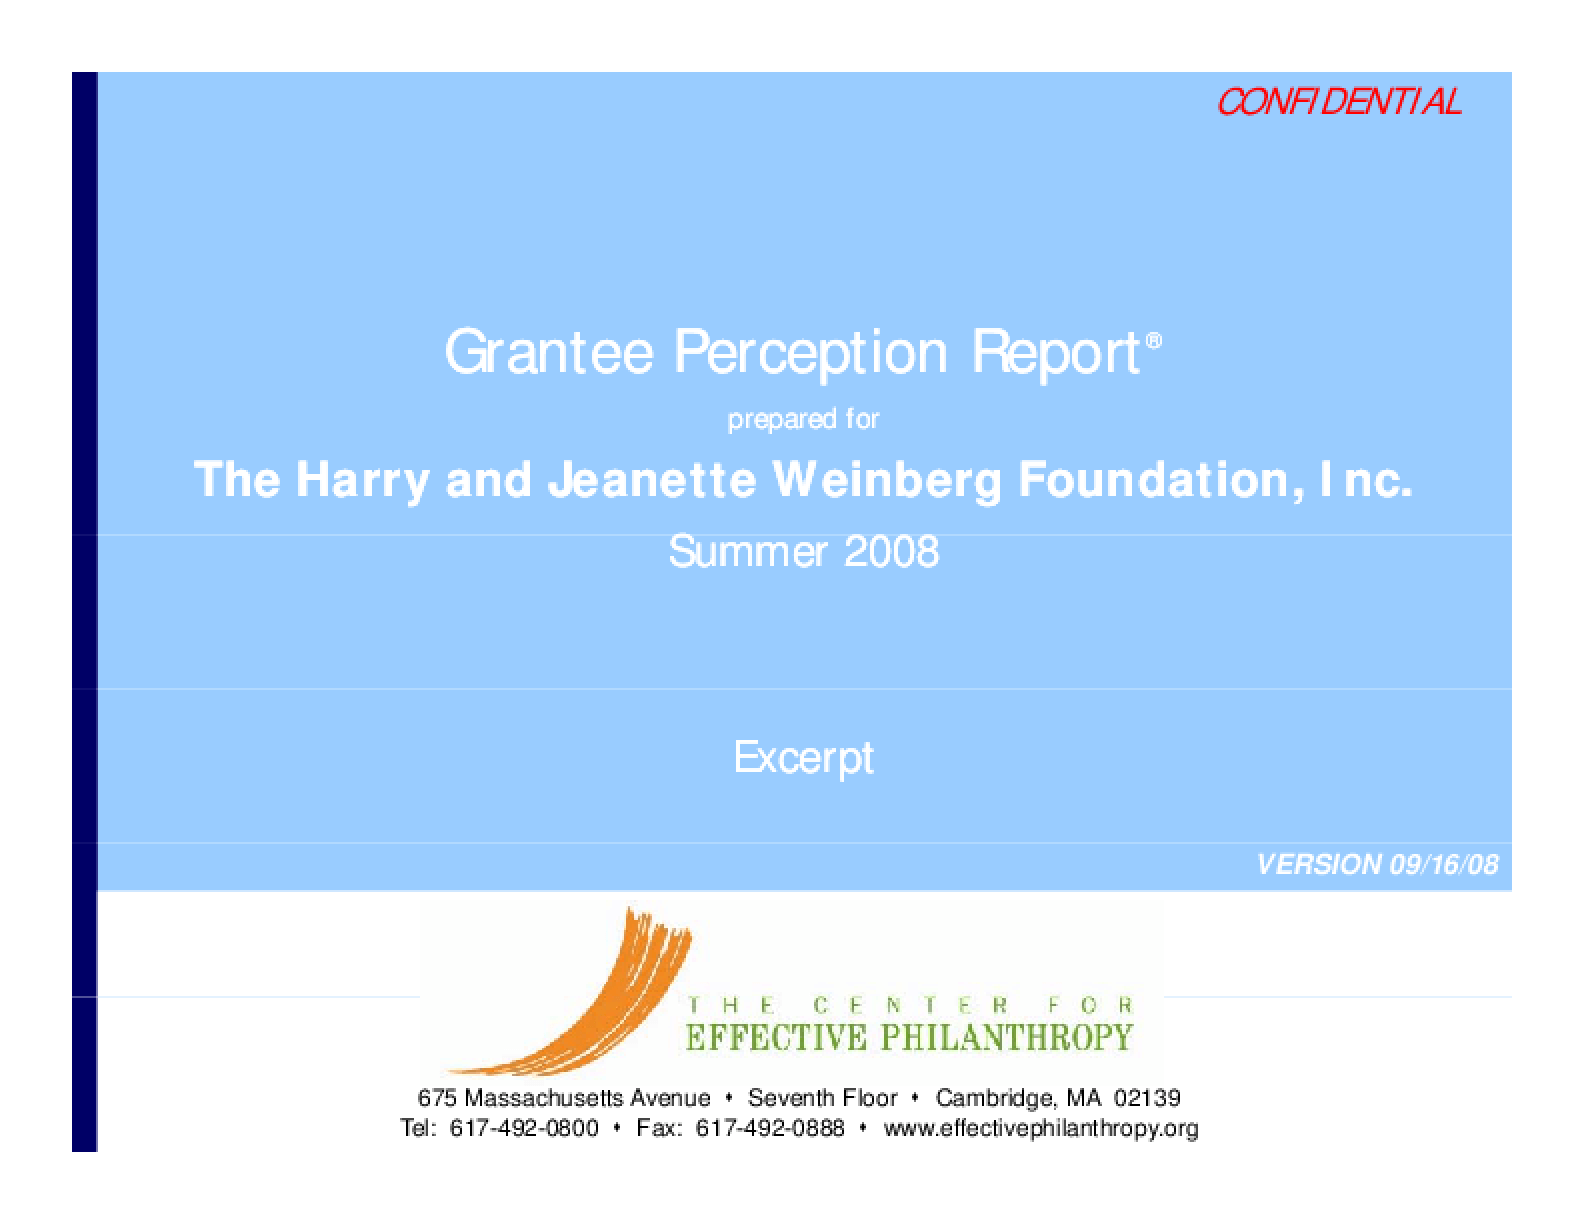 Grantee Perception Report 2008: Harry and Jeanette Weinberg Foundation, Inc.